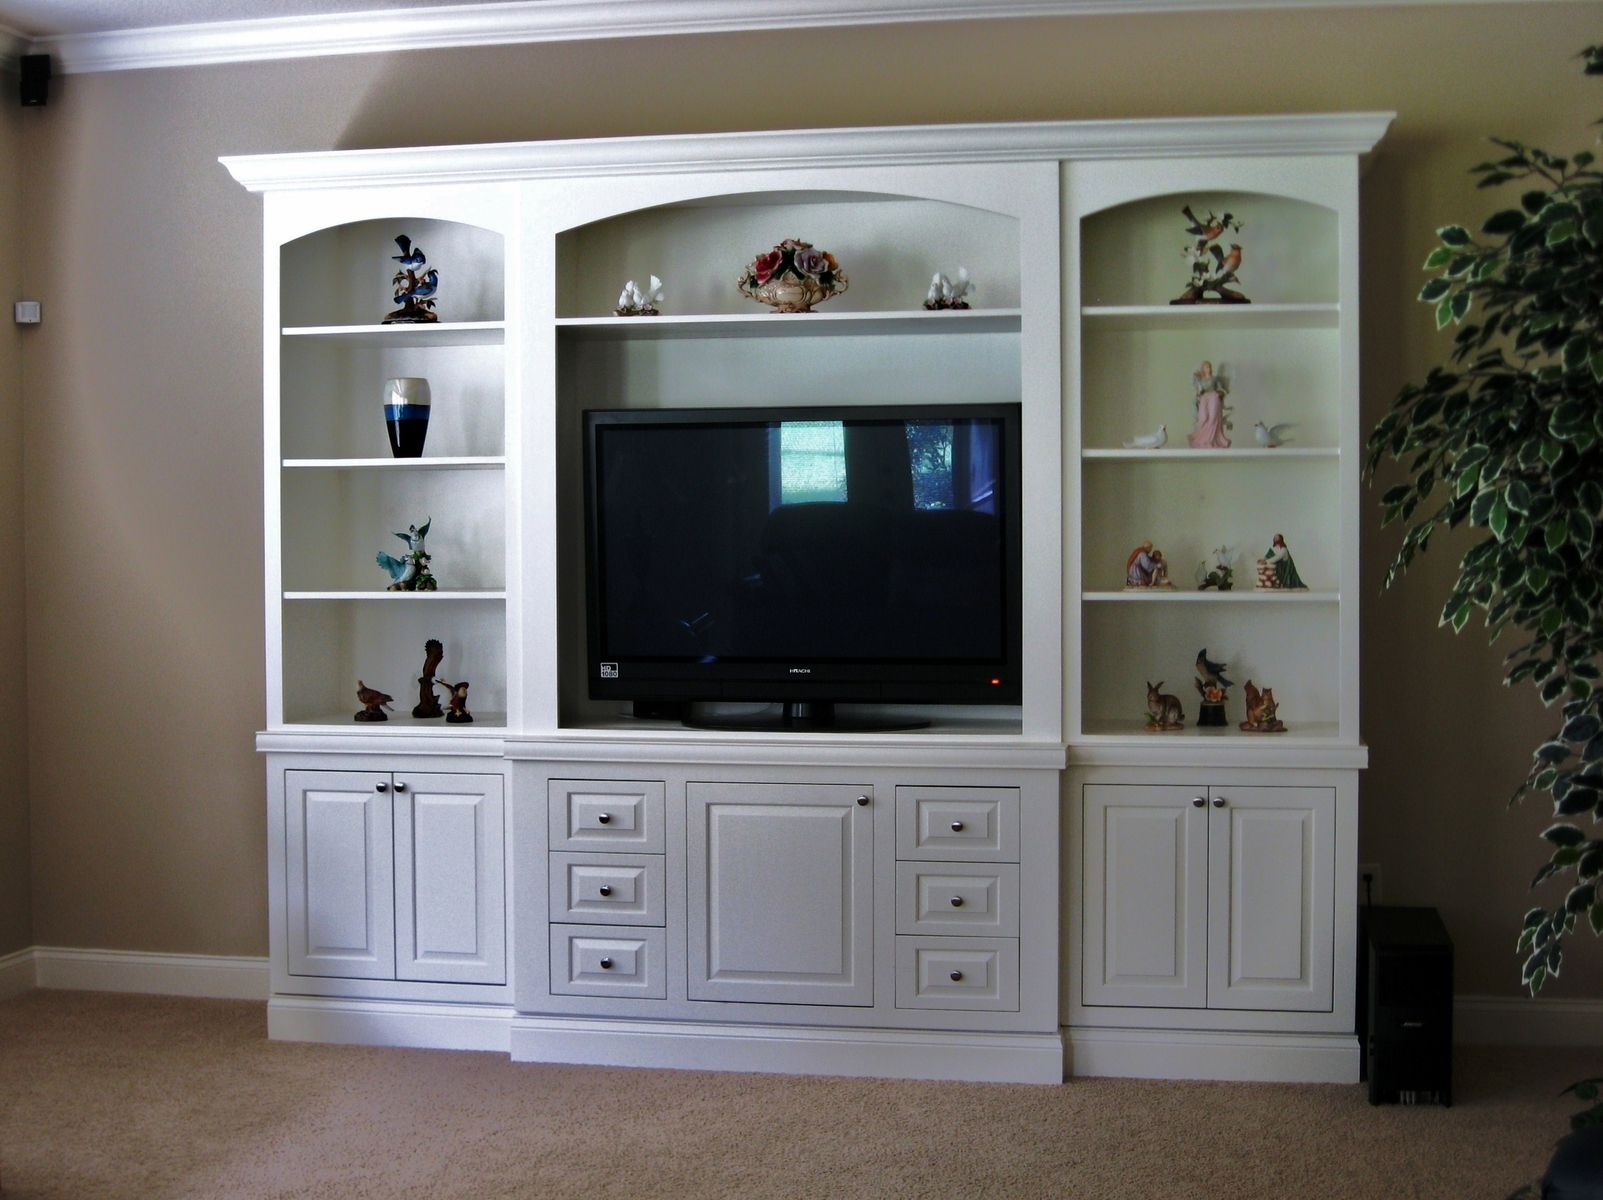 Painted Entertainment Center (With images) | Painted ...